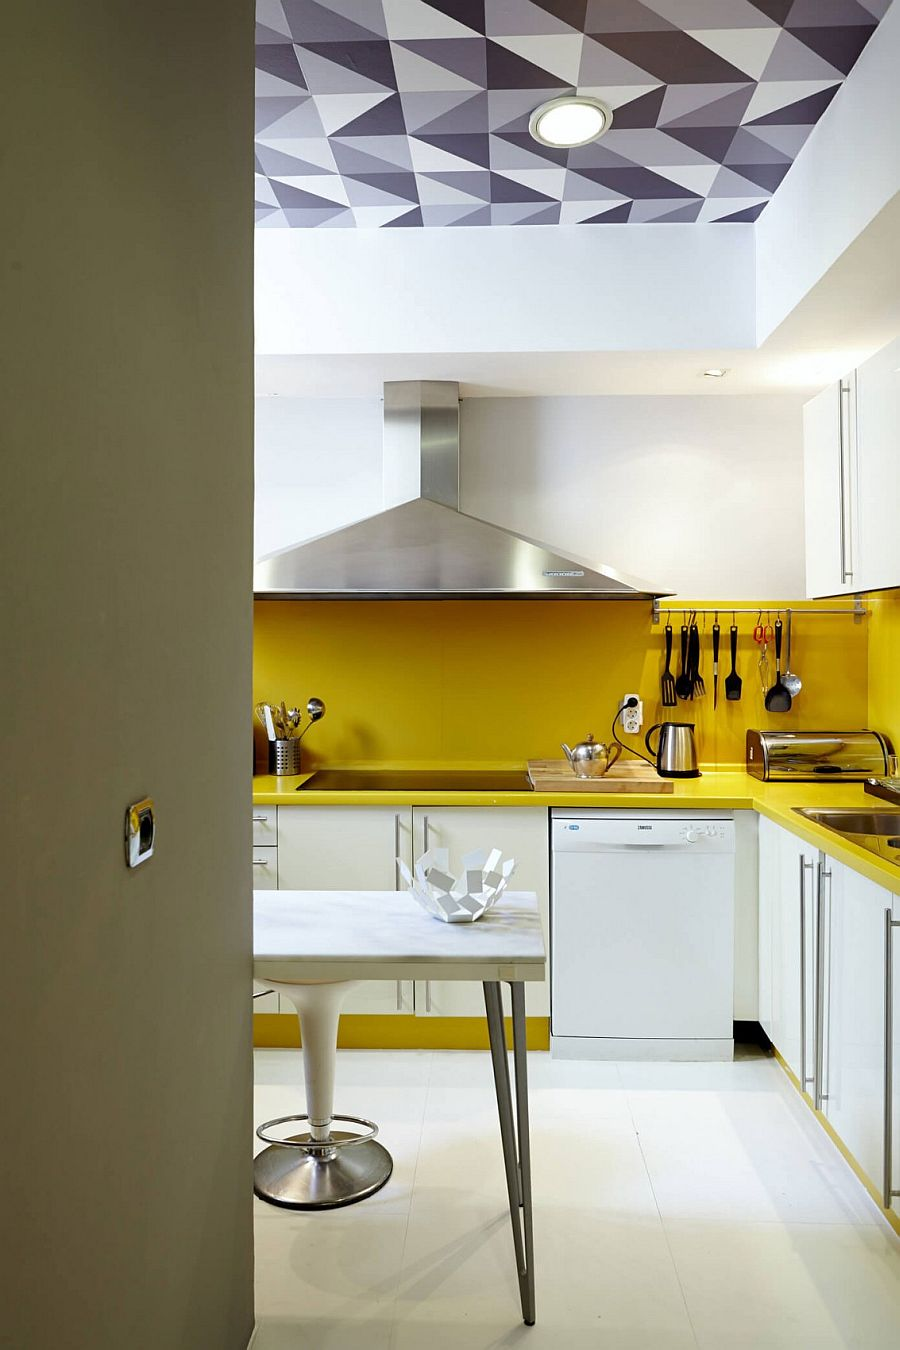 White kitchen with a vivacious yellow backsplash